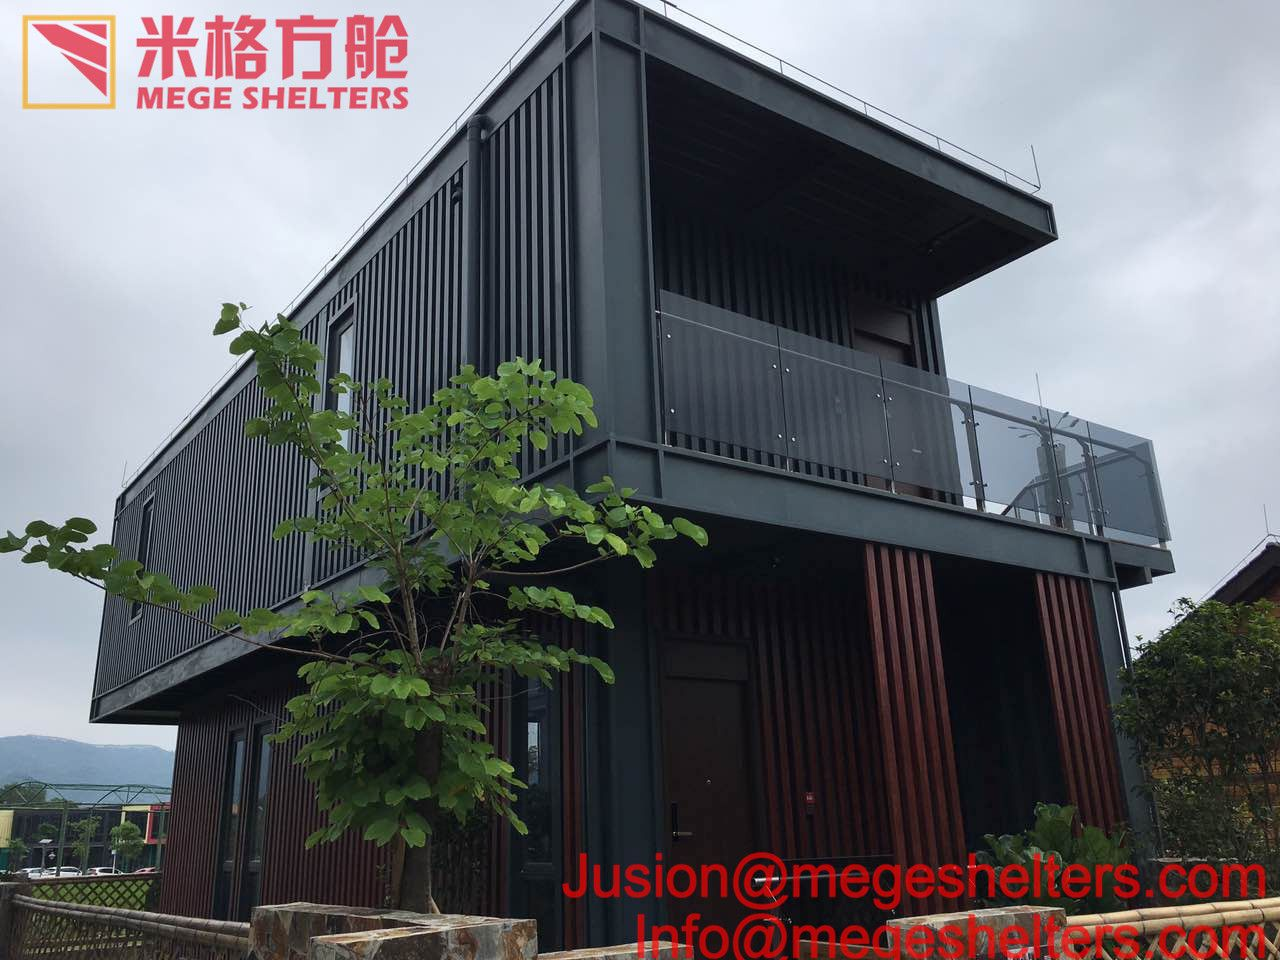 Container Haus Park Mege Container House Chinese No 1 More Products Pls Visit Our